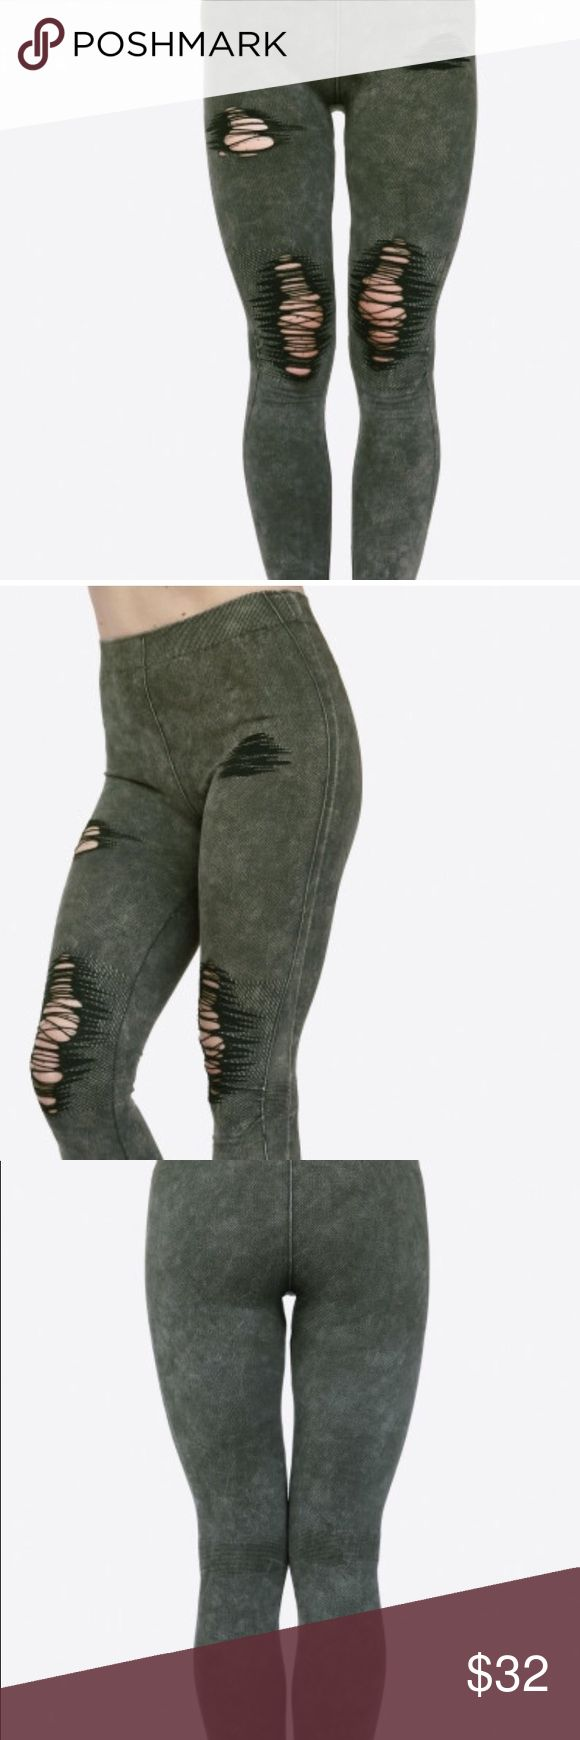 distressed olive green vintage washed leggings Lady's Distressed Vintage washed Leggings featuring elastic waist, stretchy fabric, distressed denim print, and finished with a curvy tight fit.   • Long, skinny leg design  • Distress Detailing  • Comfortable Elastic Waistband  • Denim Print  • Pull-on styling  • Cotton/Polyester  • Machine Wash Warm with similar colors using Gentle Cycle.   Composition: 65% Cotton, 30% Polyester, 5% Spandex Pants Leggings